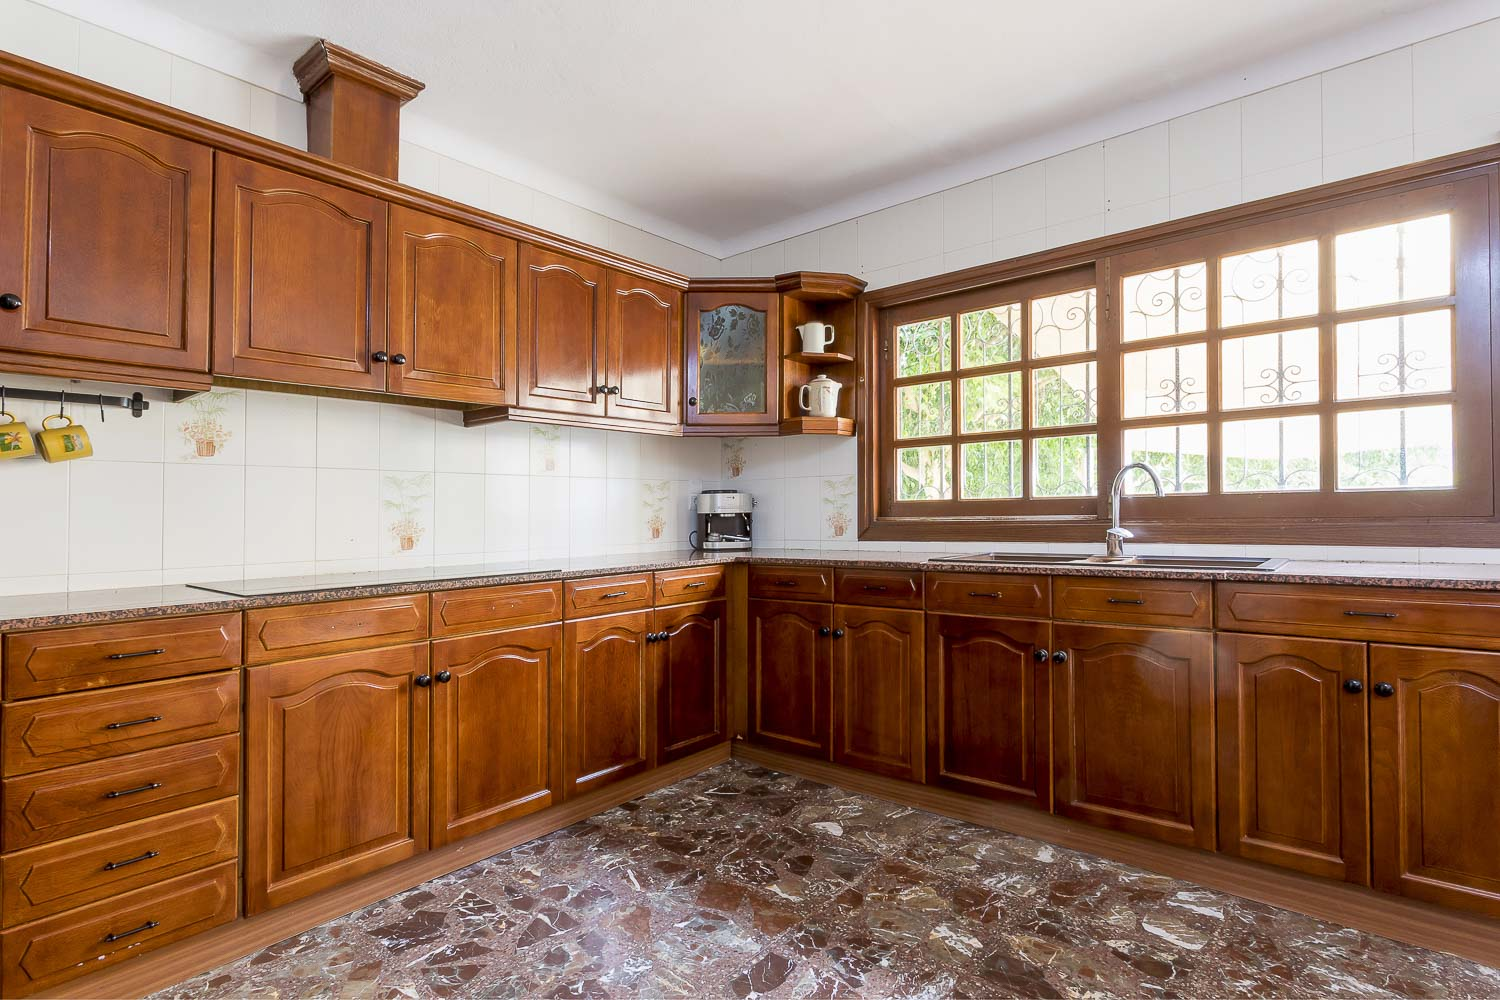 Big wood kitchen of a rental house in Ibiza